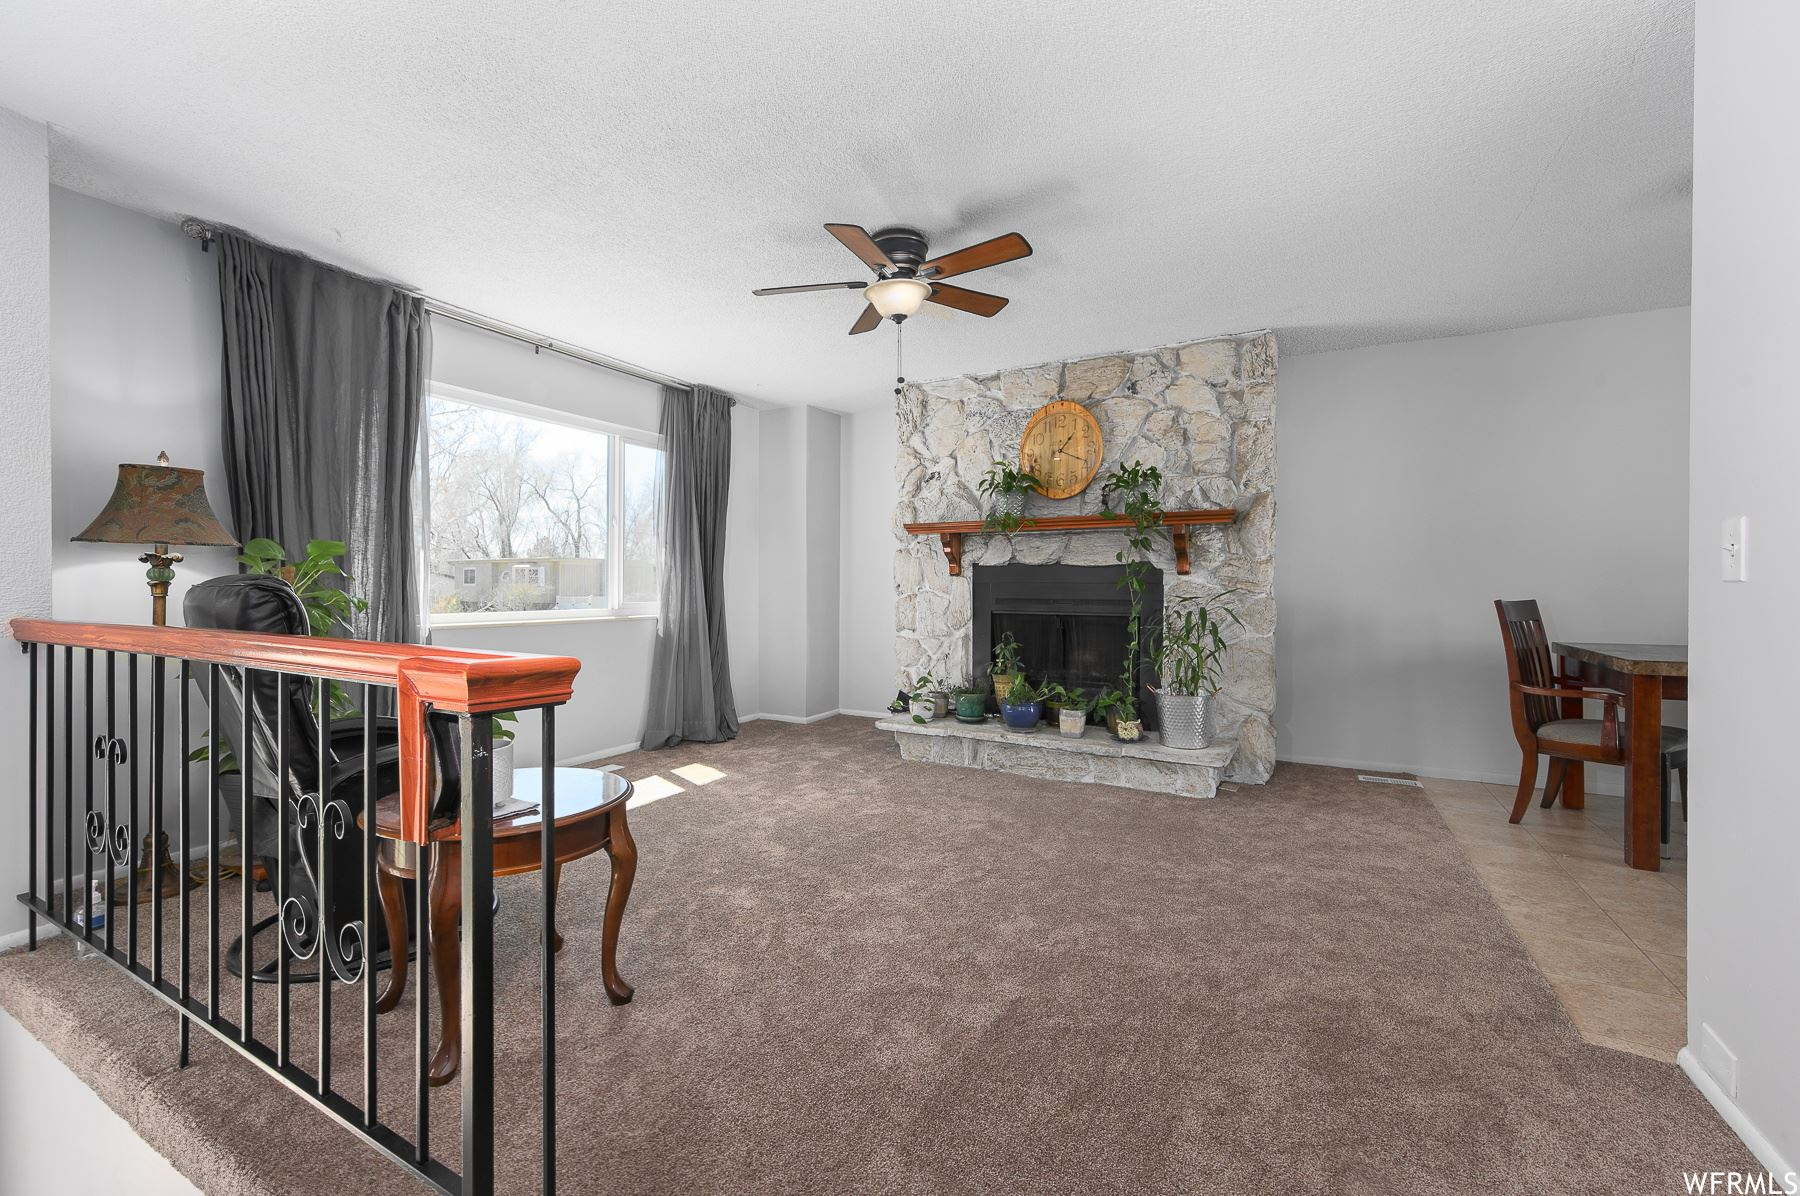 Photo of 7147 S 350 E, Midvale, UT 84047 (MLS # 1733413)